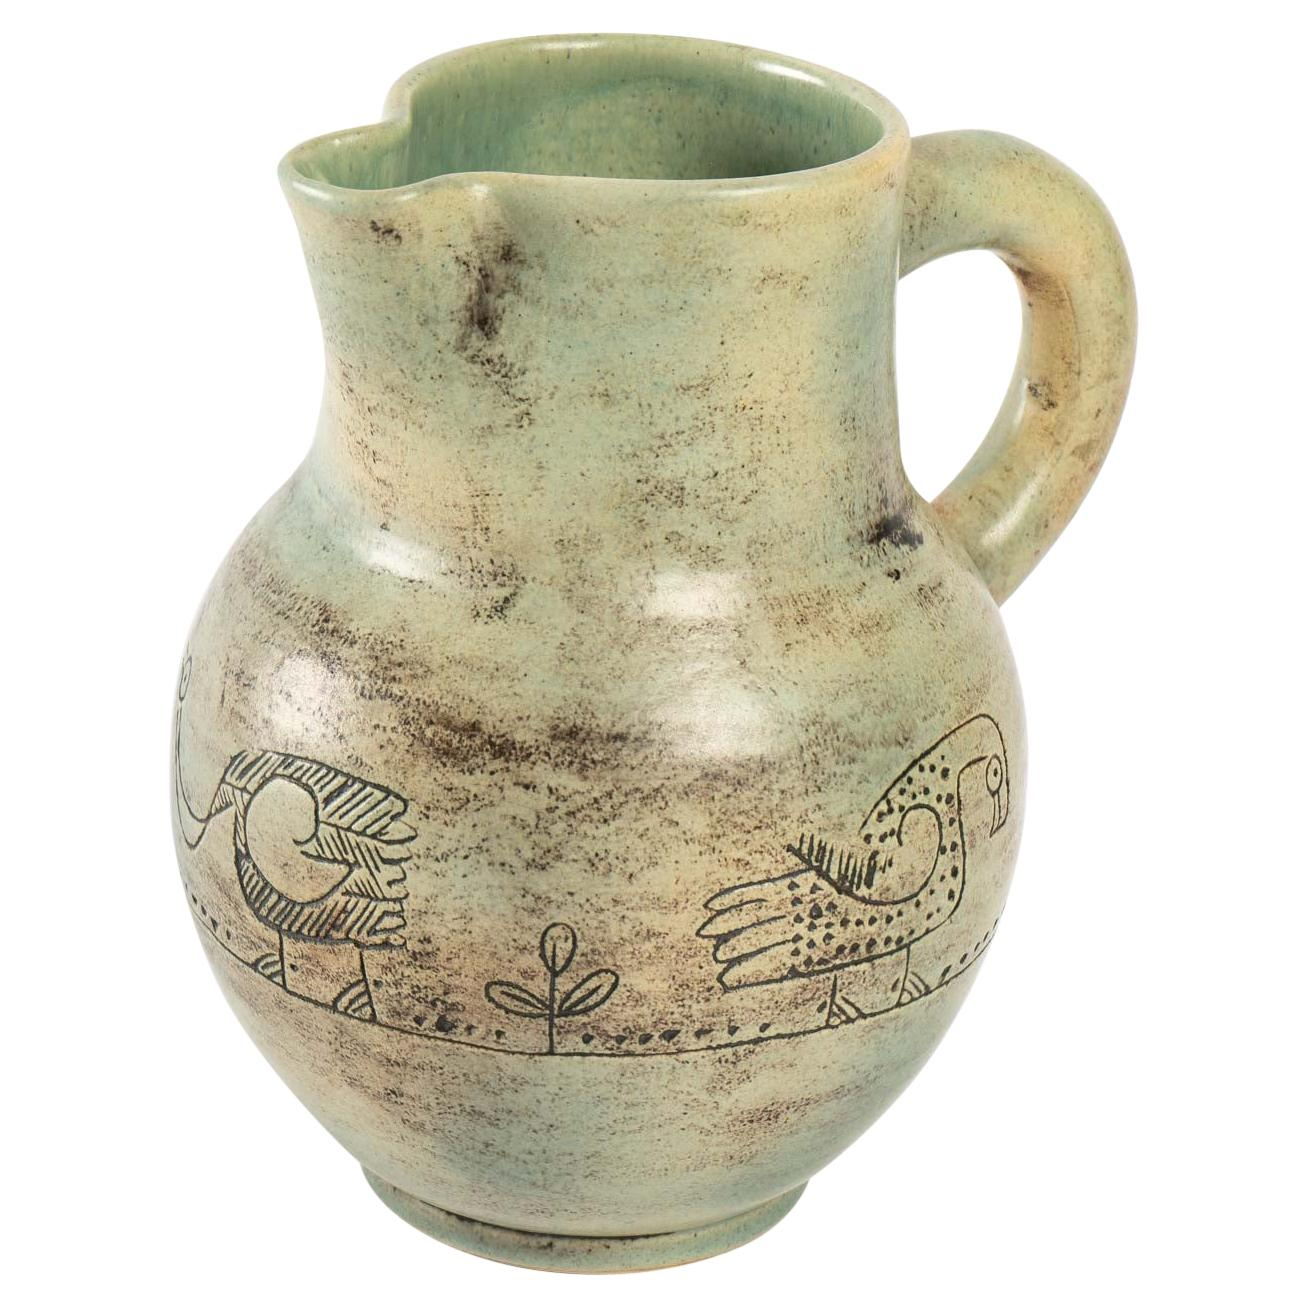 Jug by Jacques Blin